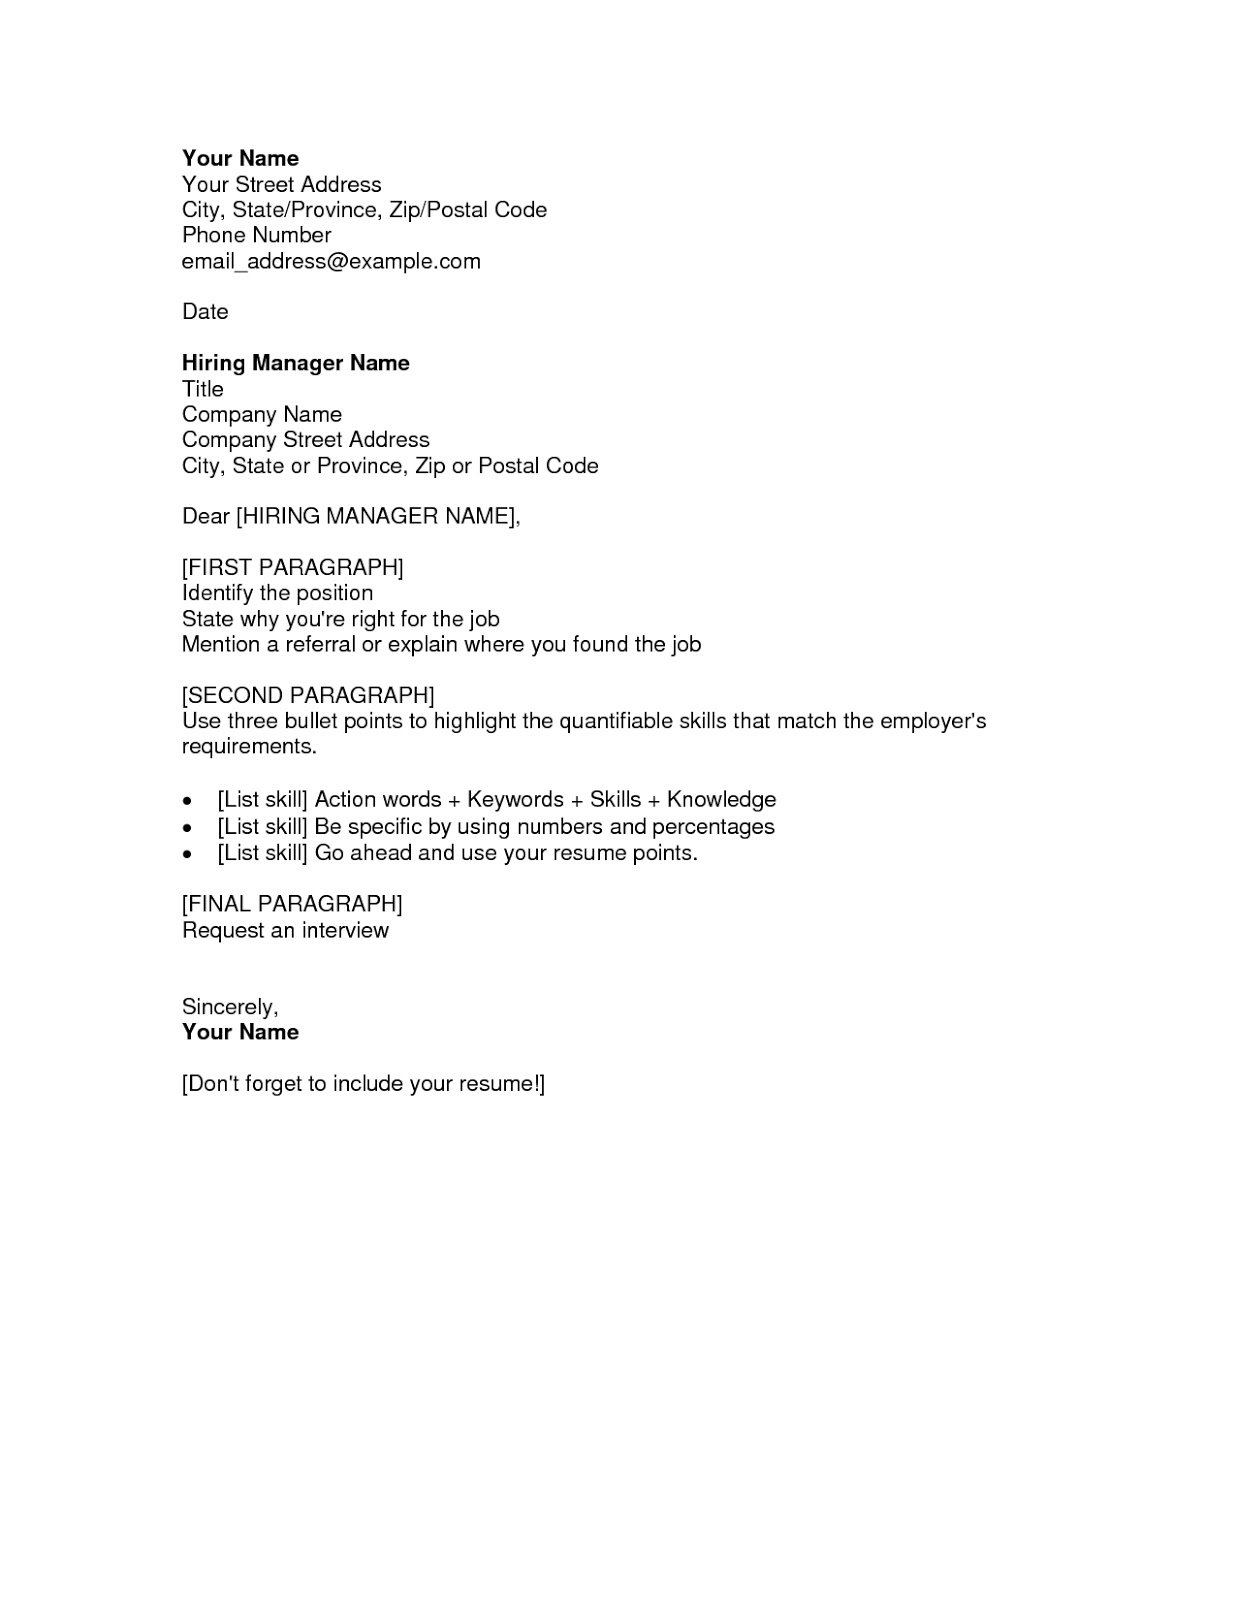 Sample resume cover letter examples